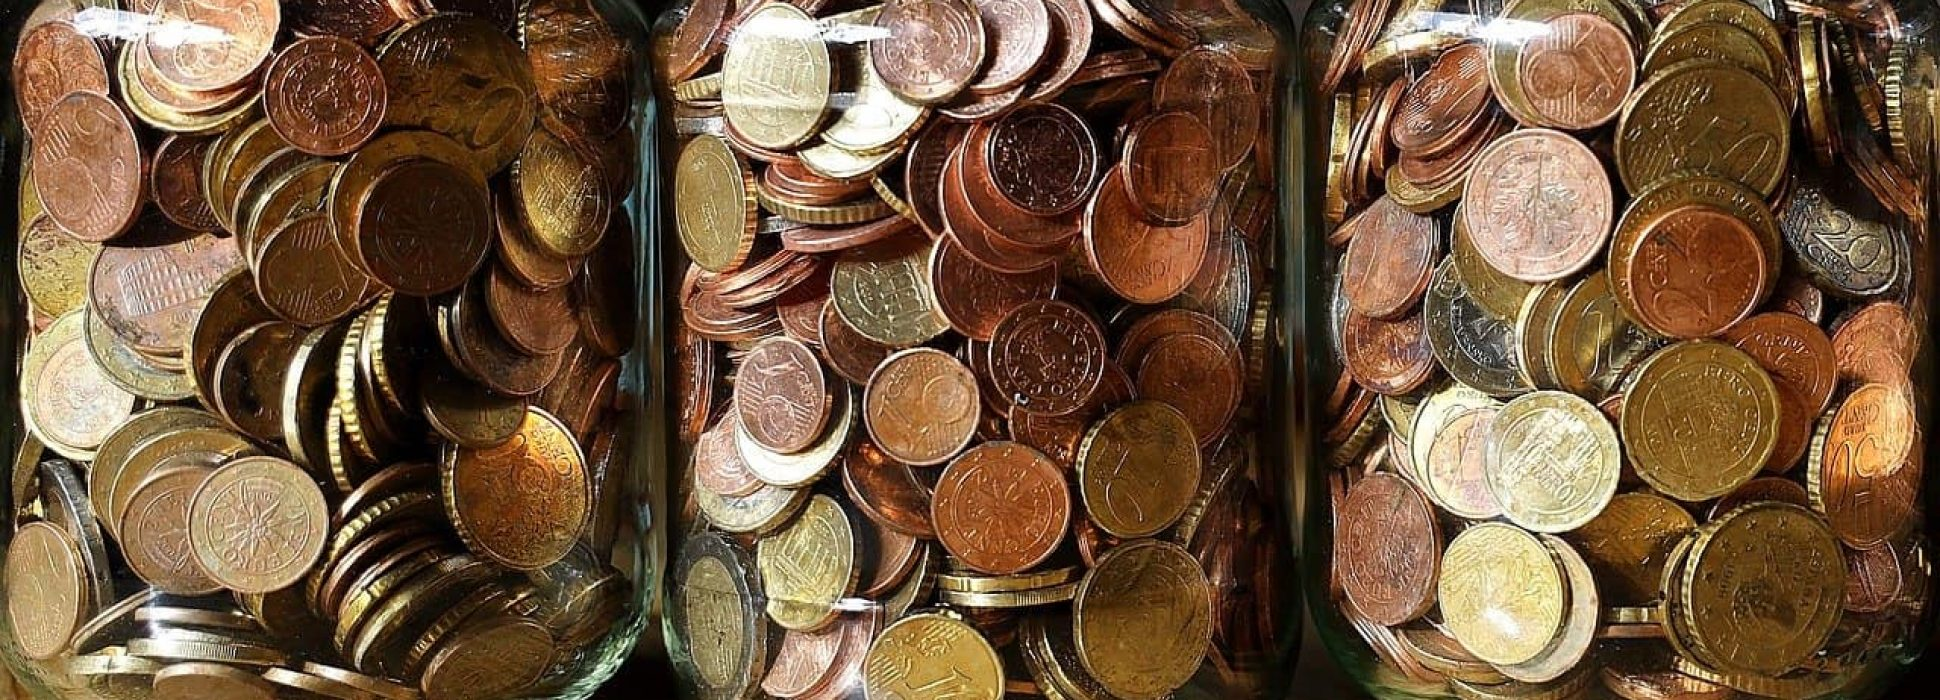 save, coins, currency